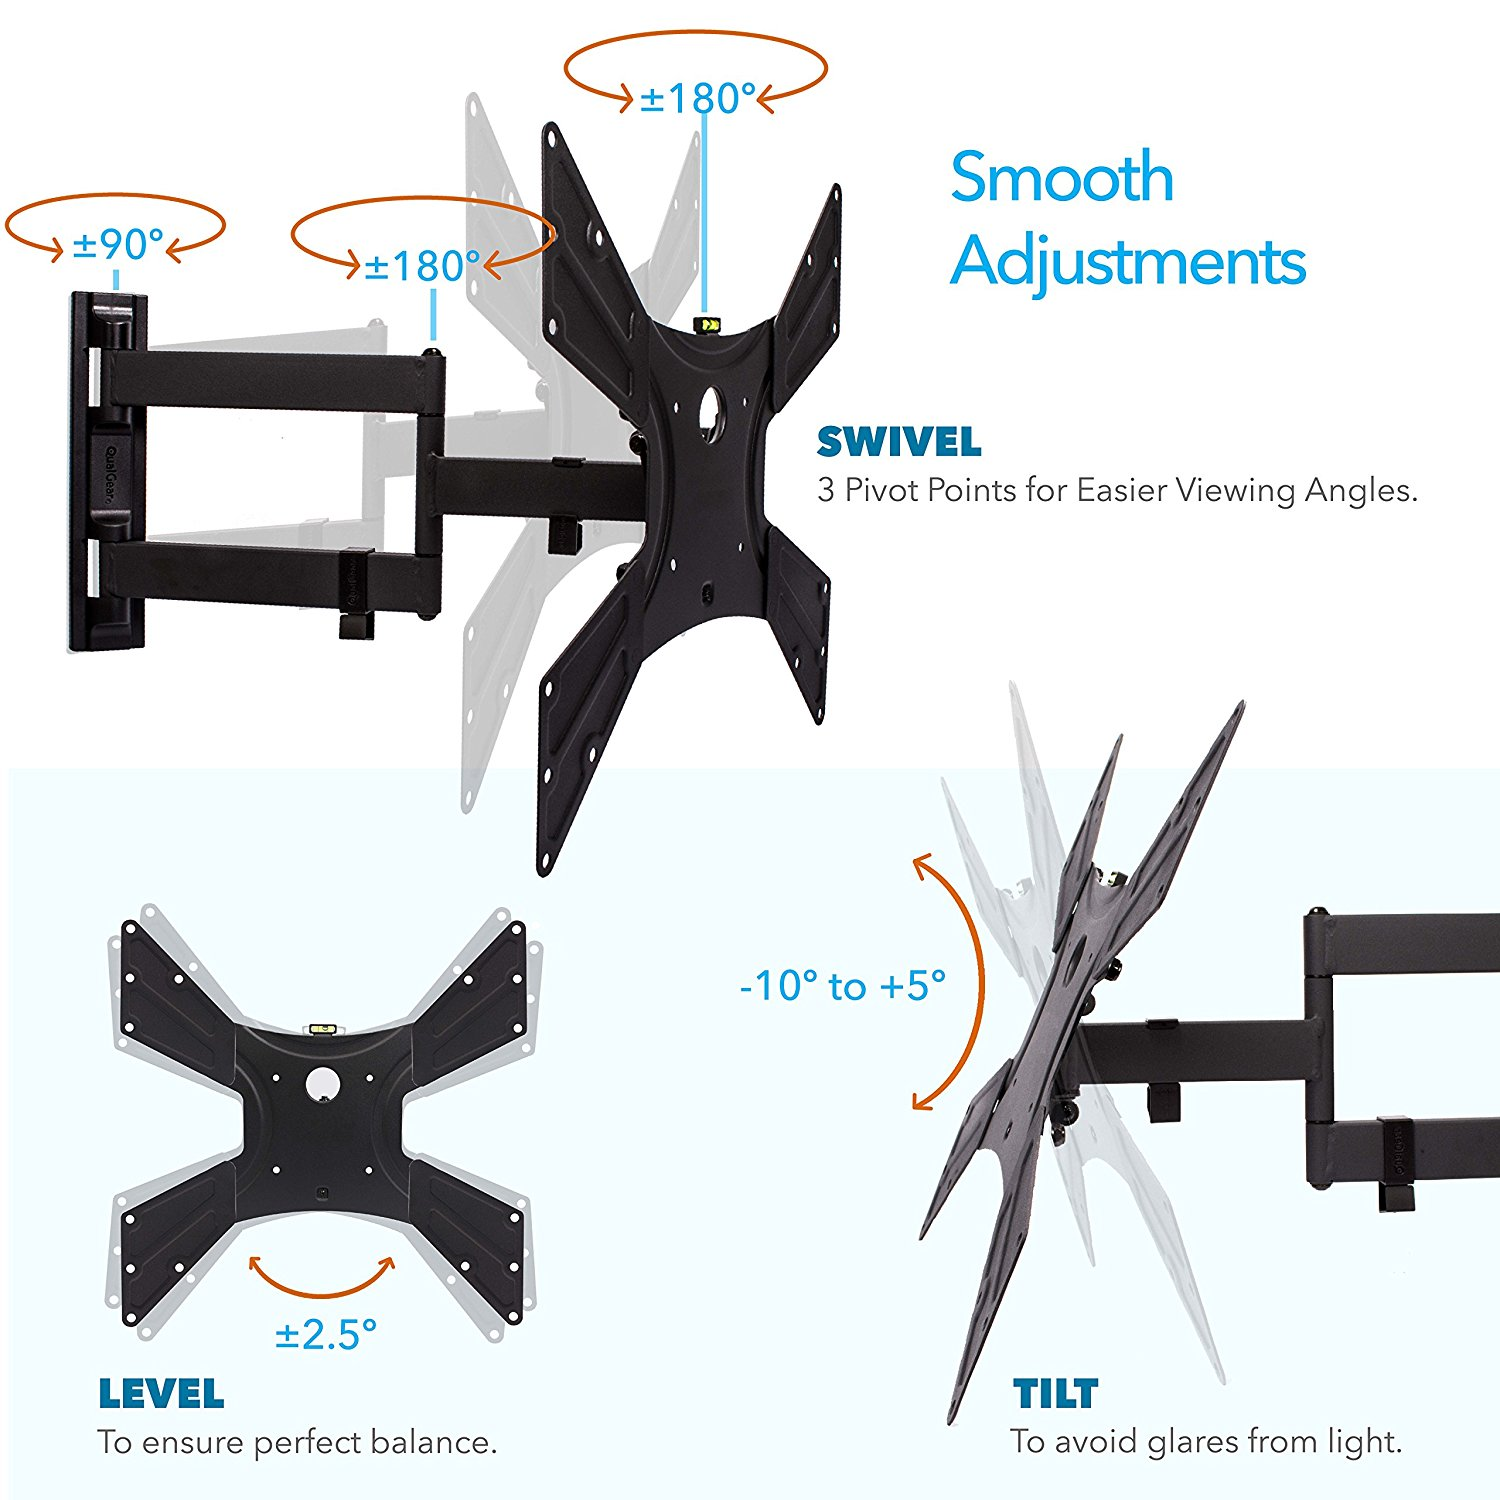 QualGear QG-TM-021-BLK Universal Ultra Slim Low Profile Articulating TV Wall Mount Kit for most 23-inch to 47-inch and some 55-inch LED TVs, w/ HDMI v2.0 Cable 6 ft